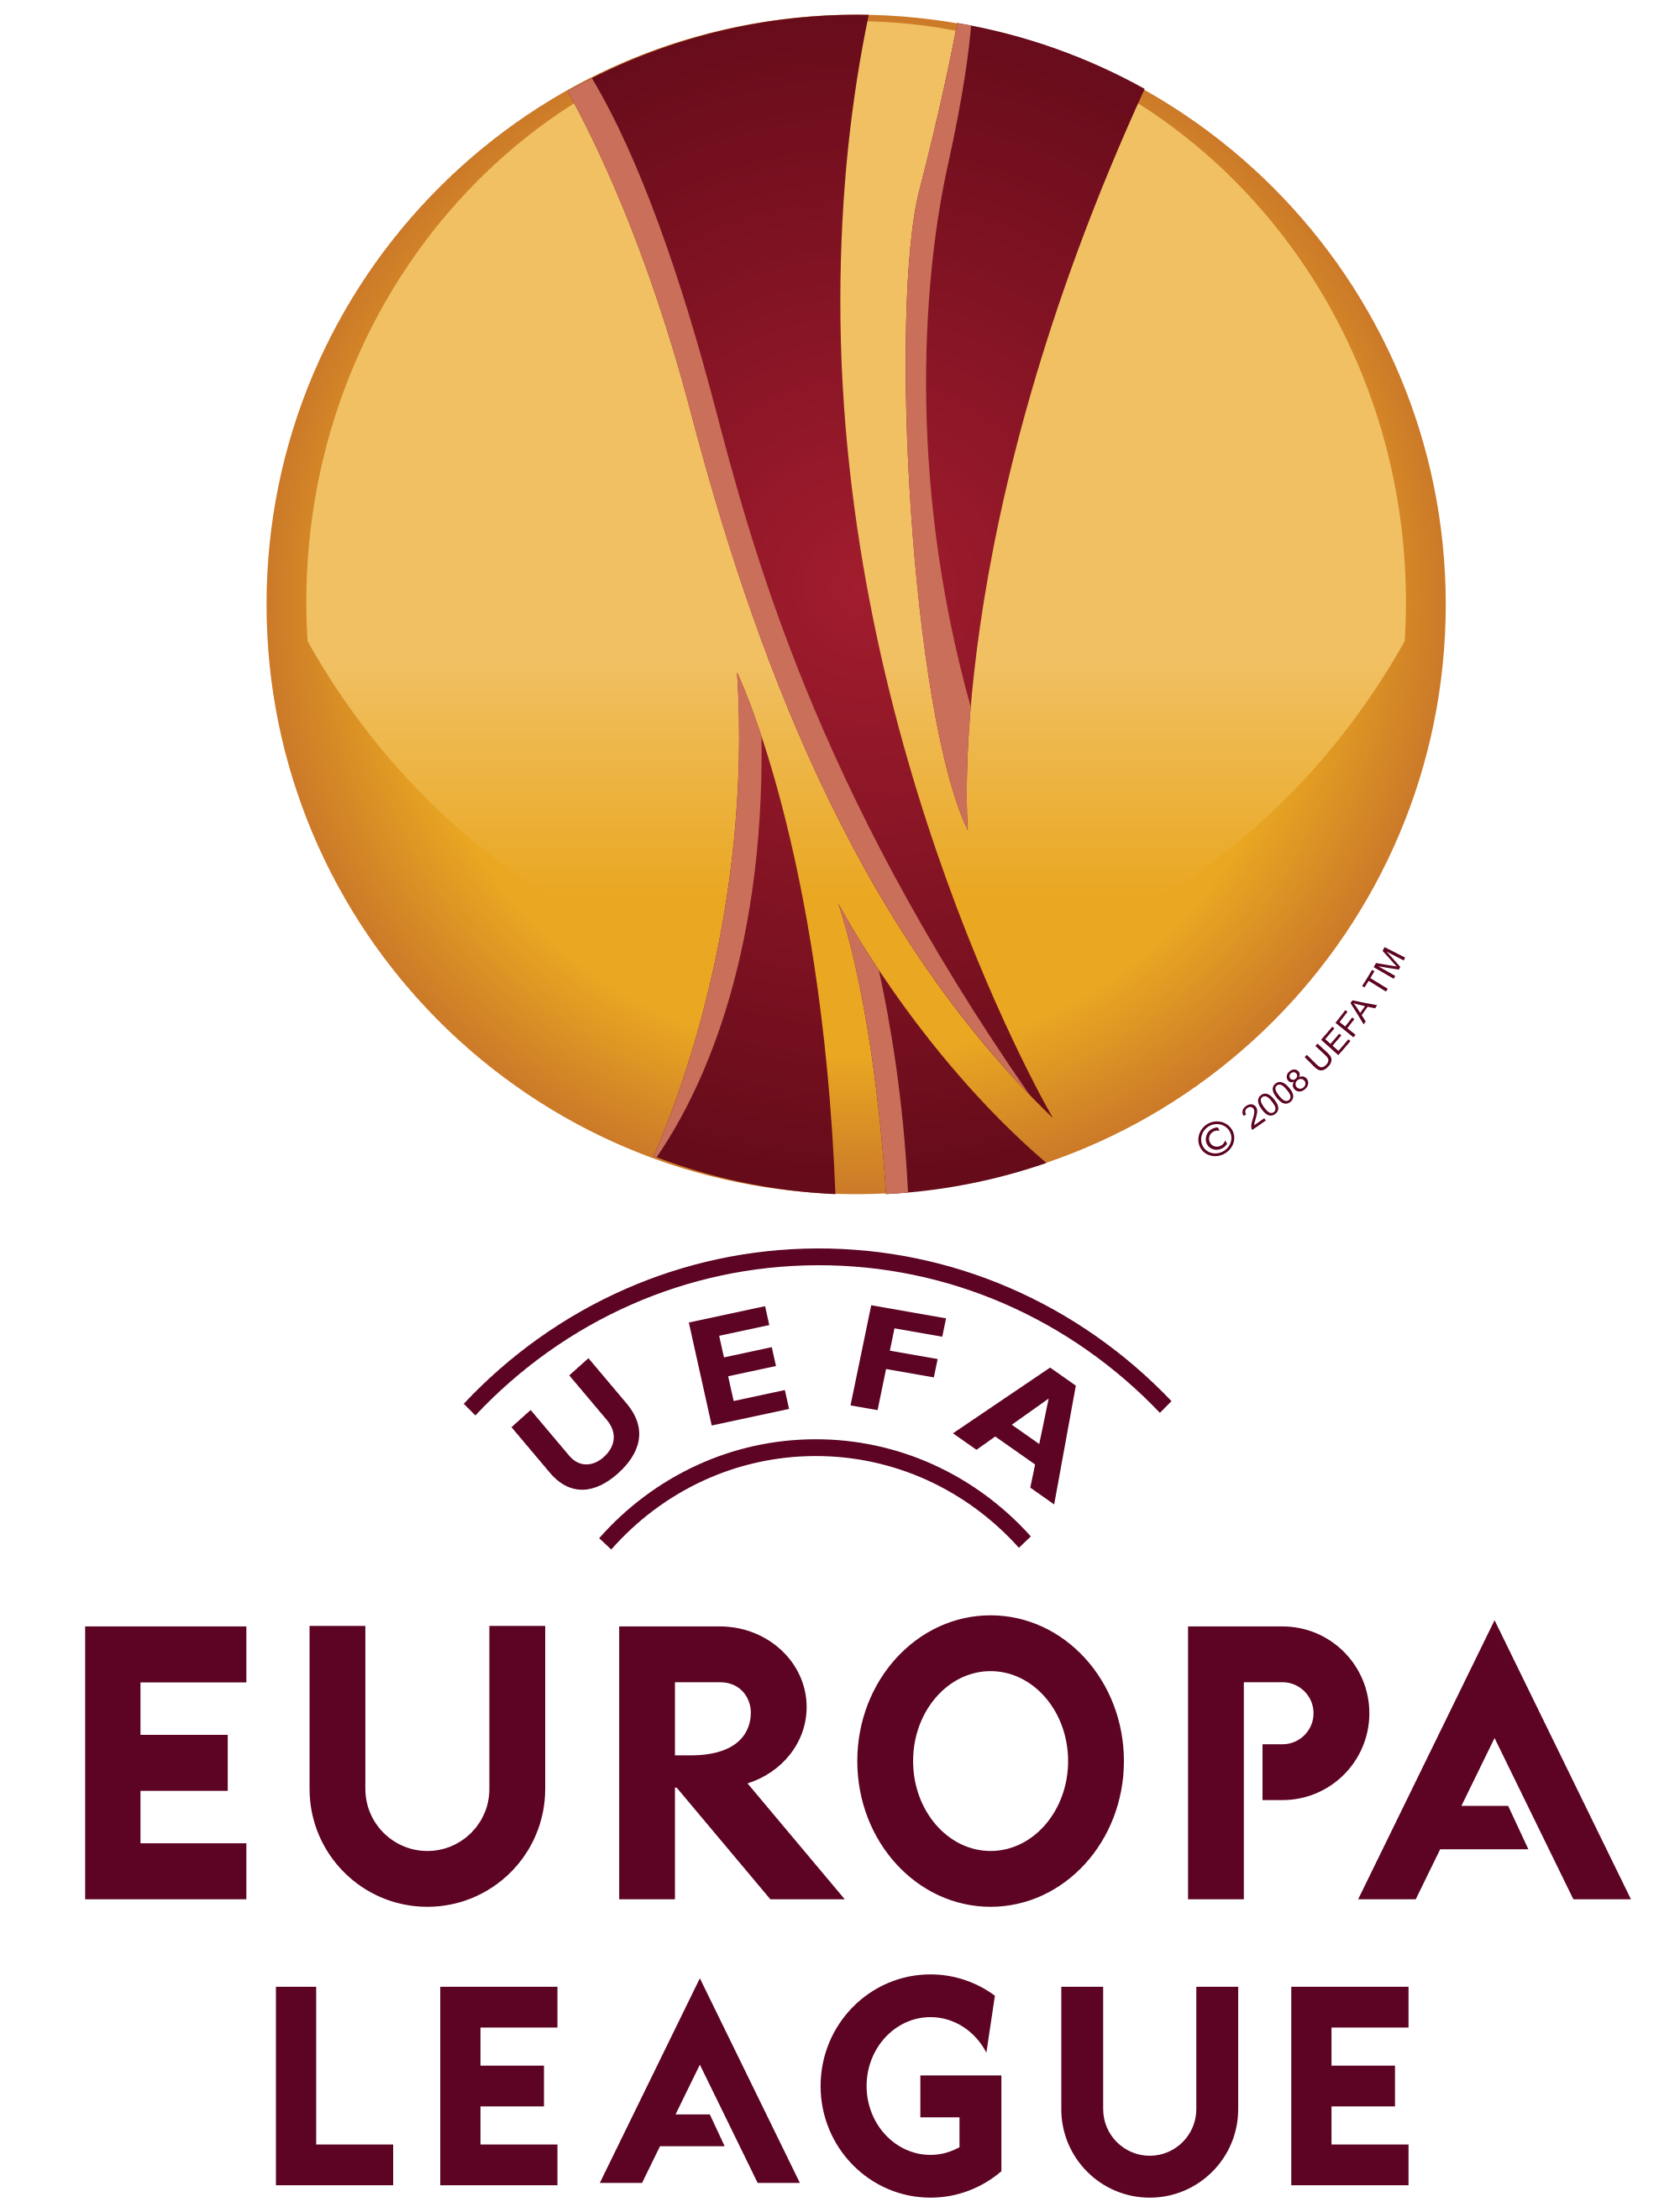 uefa ueropa league